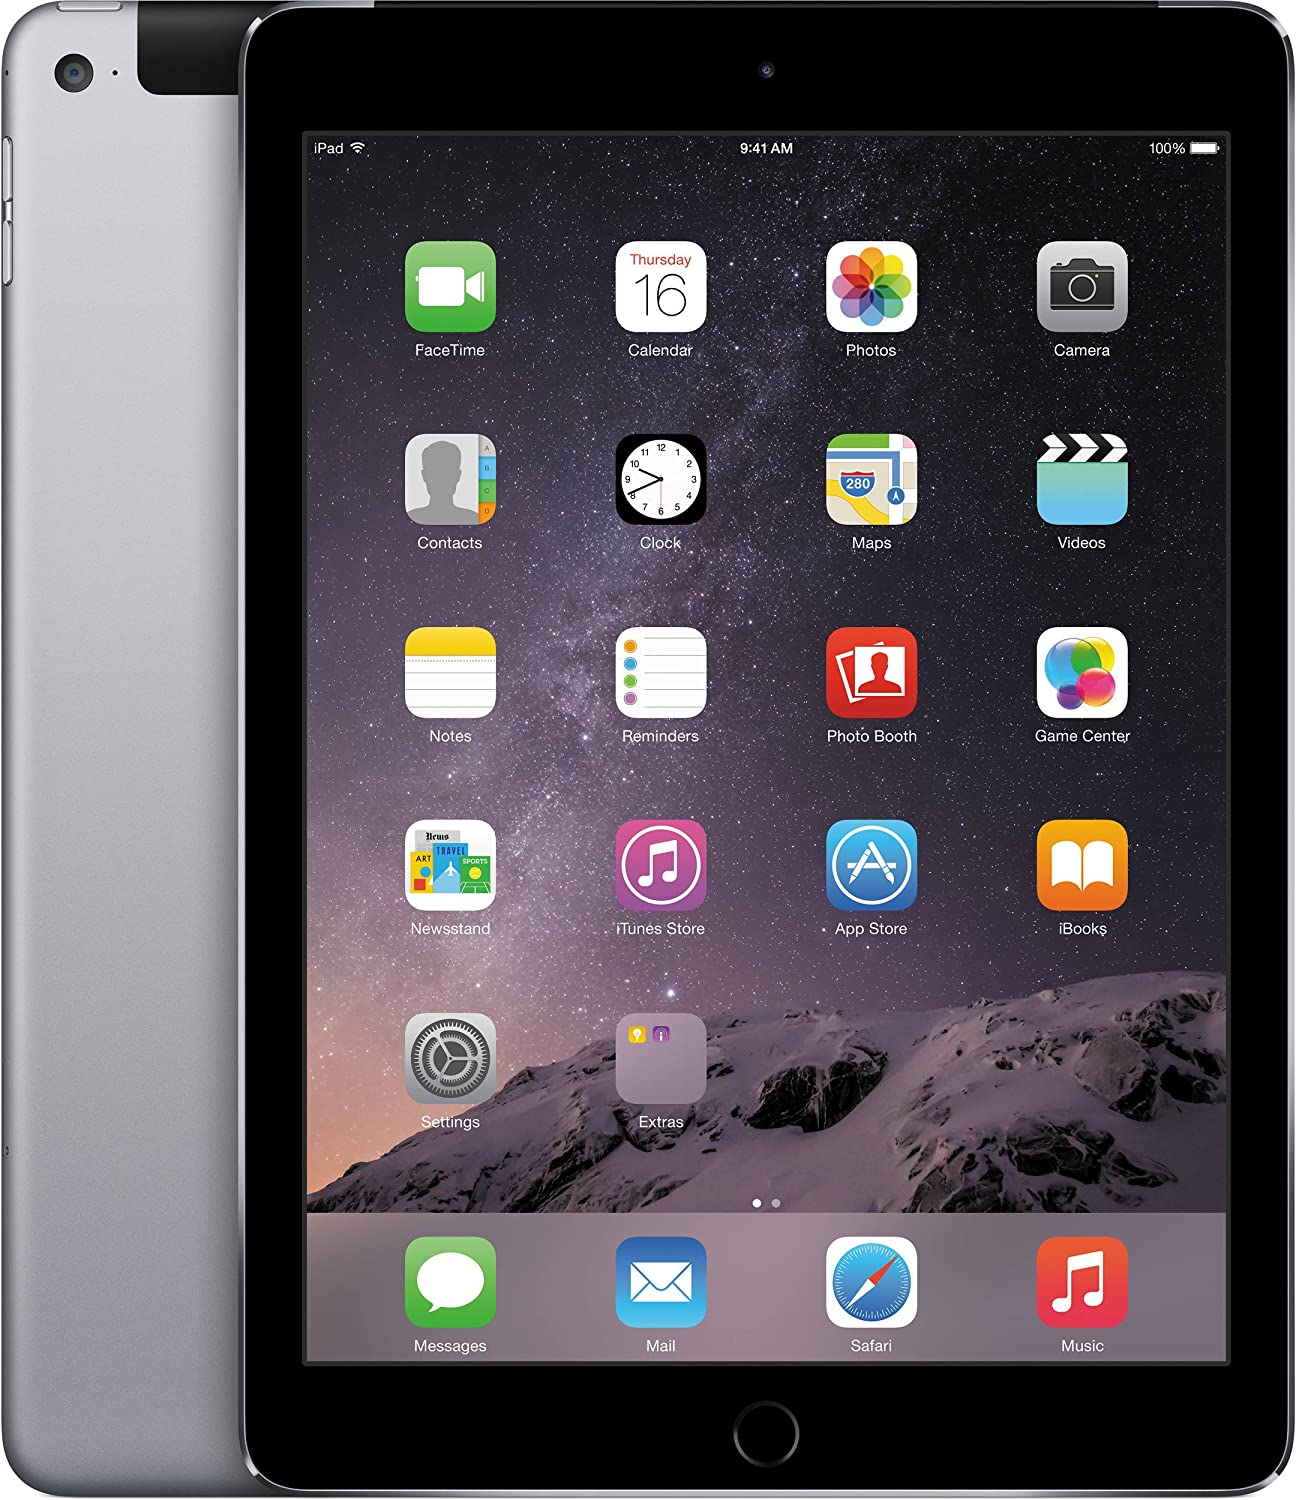 Apple iPad Air 2 MH2M2LL/A 64GB Wifi + Cellular Unlocked 9.7in Space Gray (Renewed)